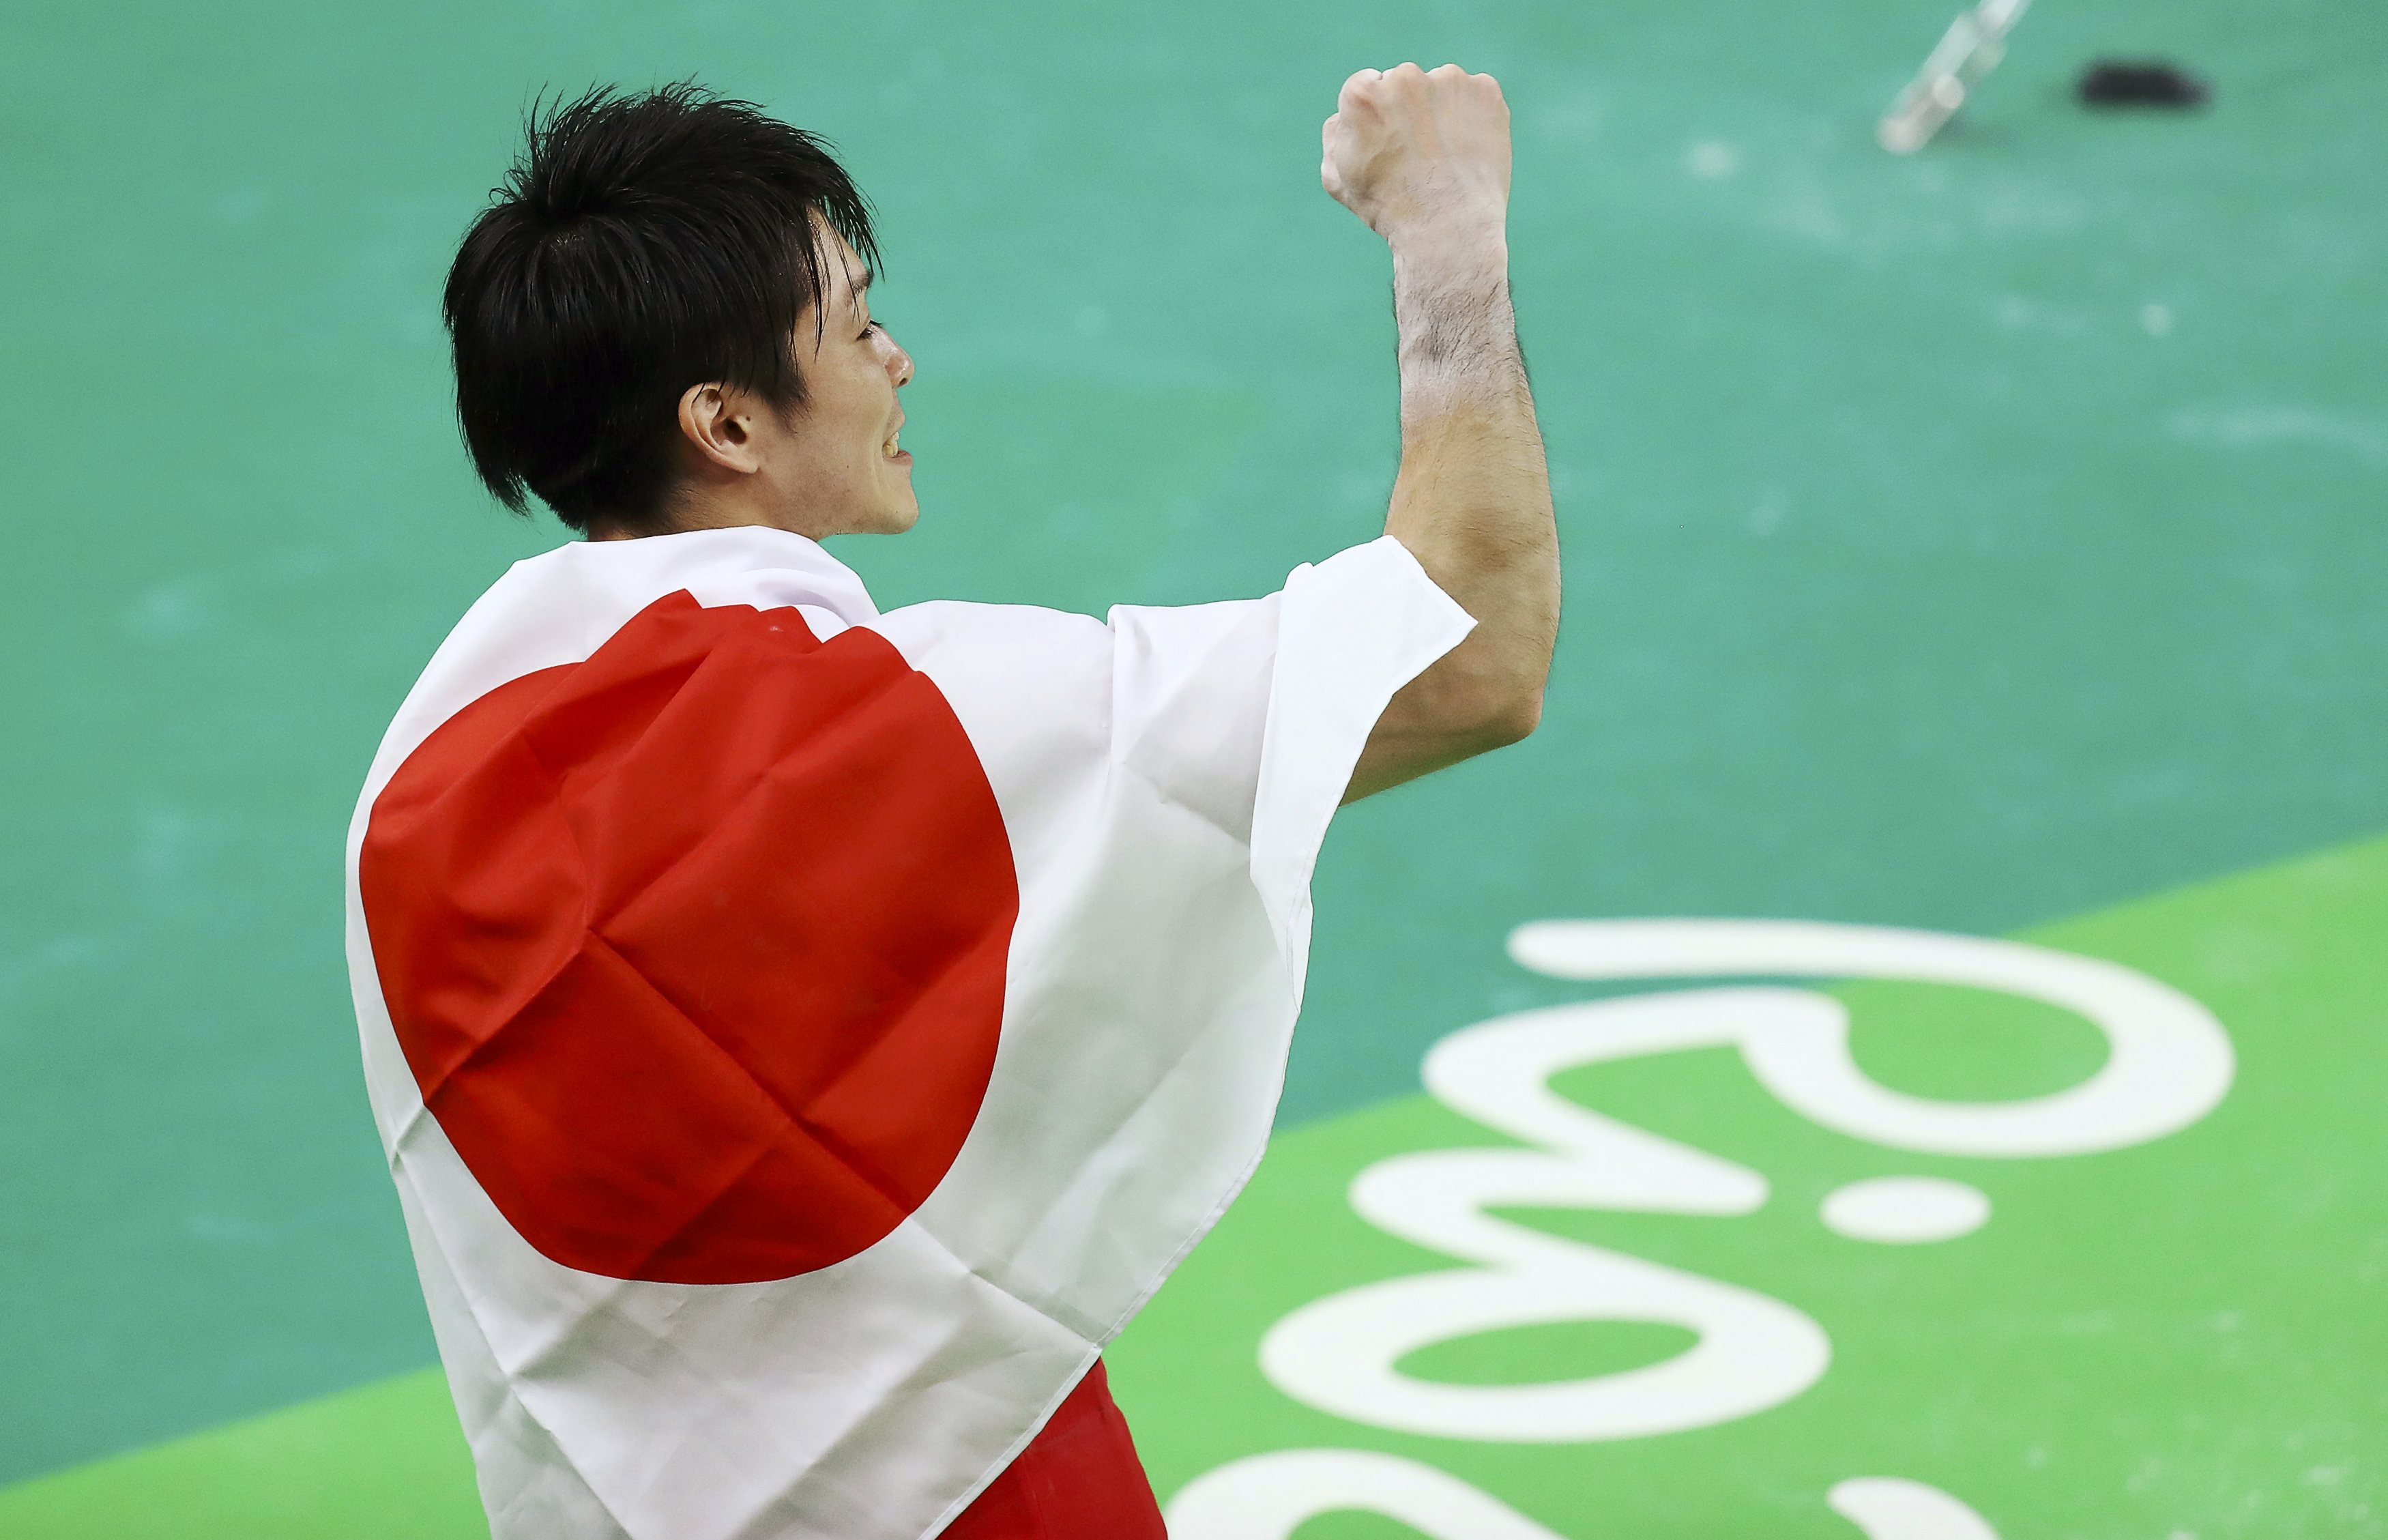 Kohei Uchimura celebrates after winning the gold medal in the men's individual all-around final on Wednesday at the 2016 Rio de Janeiro Olympics. | REUTER